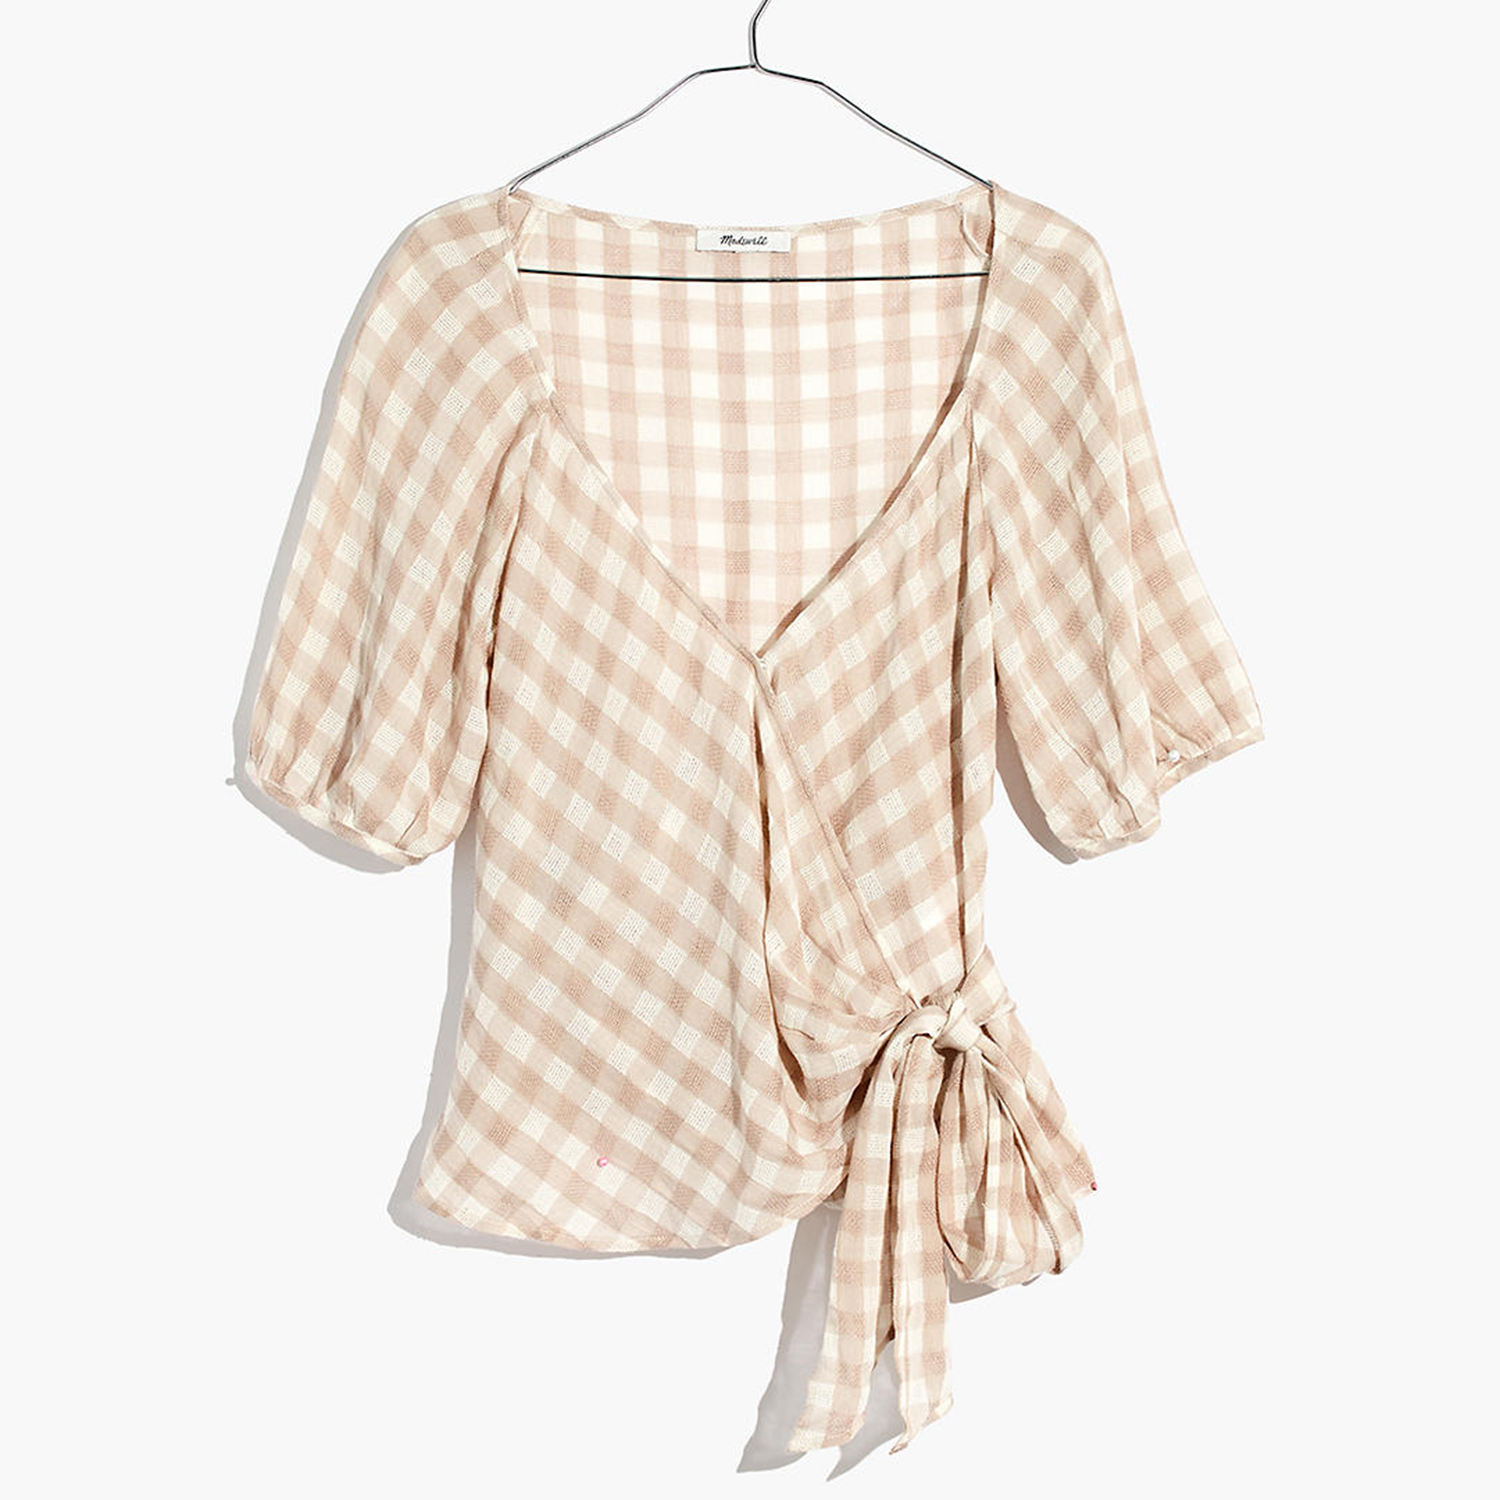 Madewell Clothing Fashion Sale